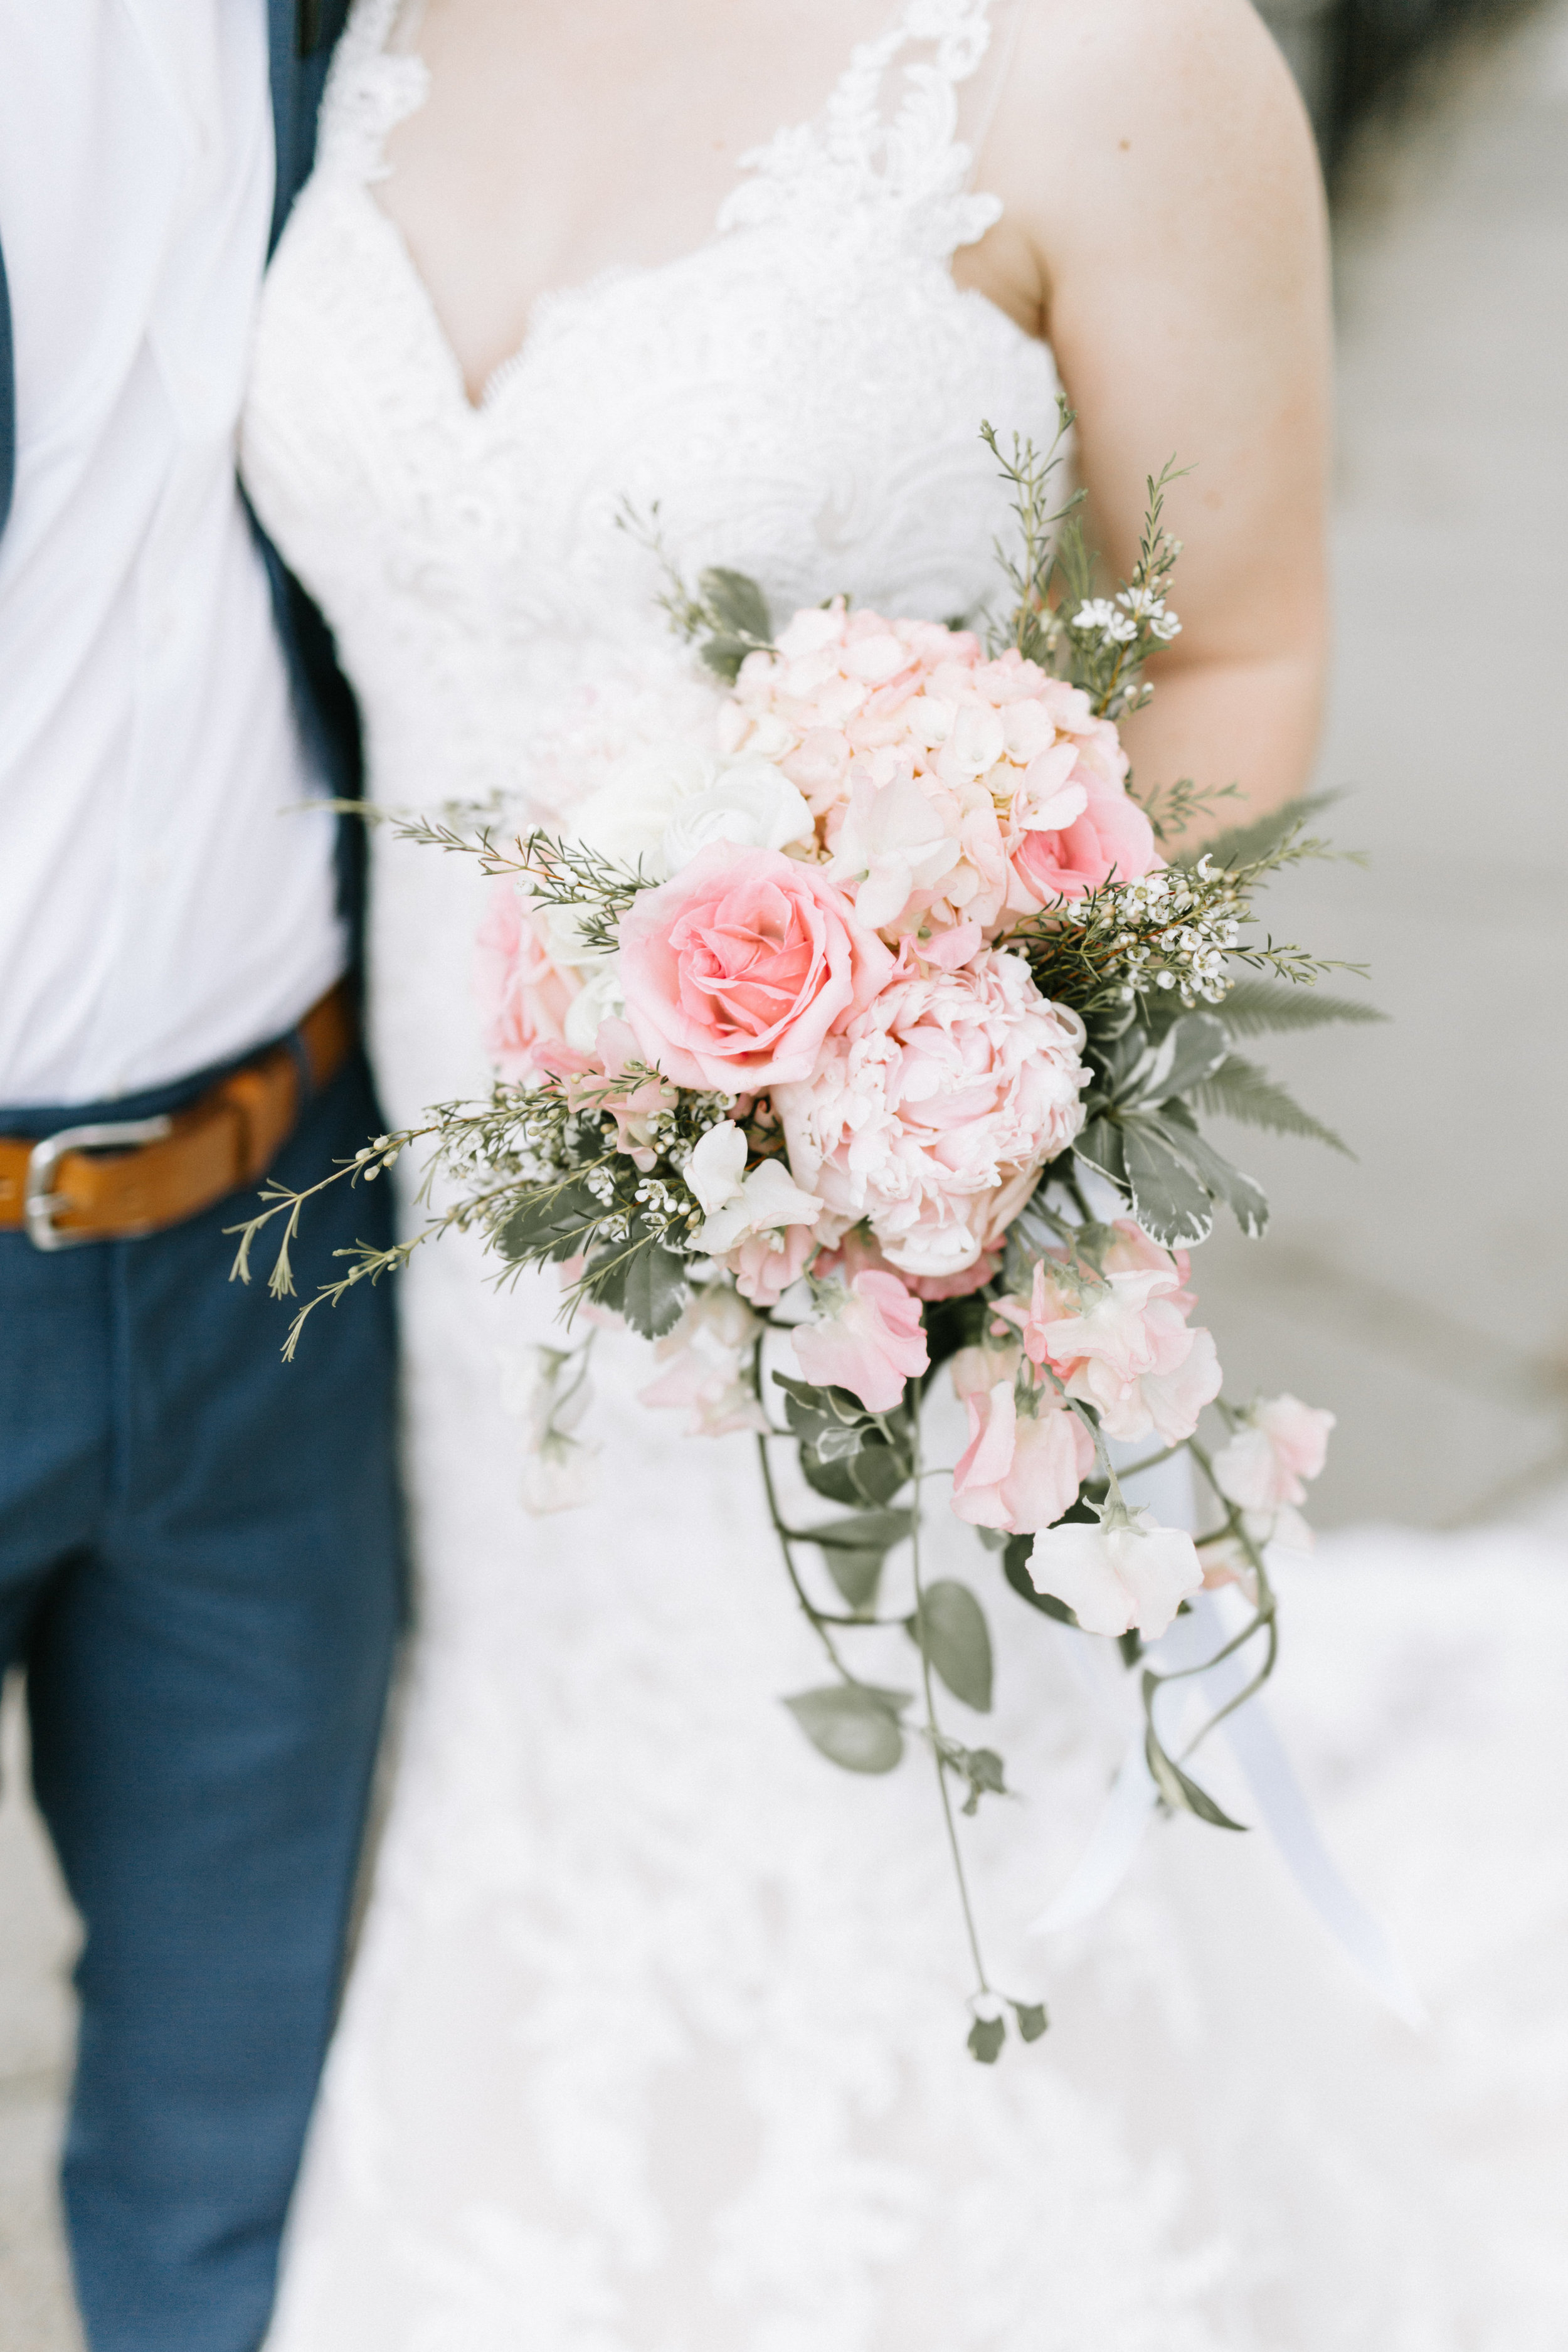 Lydia + Michael Sixpence Events day of coordinating client | Loring Social | Kate Becker Photography | Mann Frau Videography | Minted wedding stationery | bride wit h sweetheart lace neckline sheer straps | groom in true blue suit with tan belt